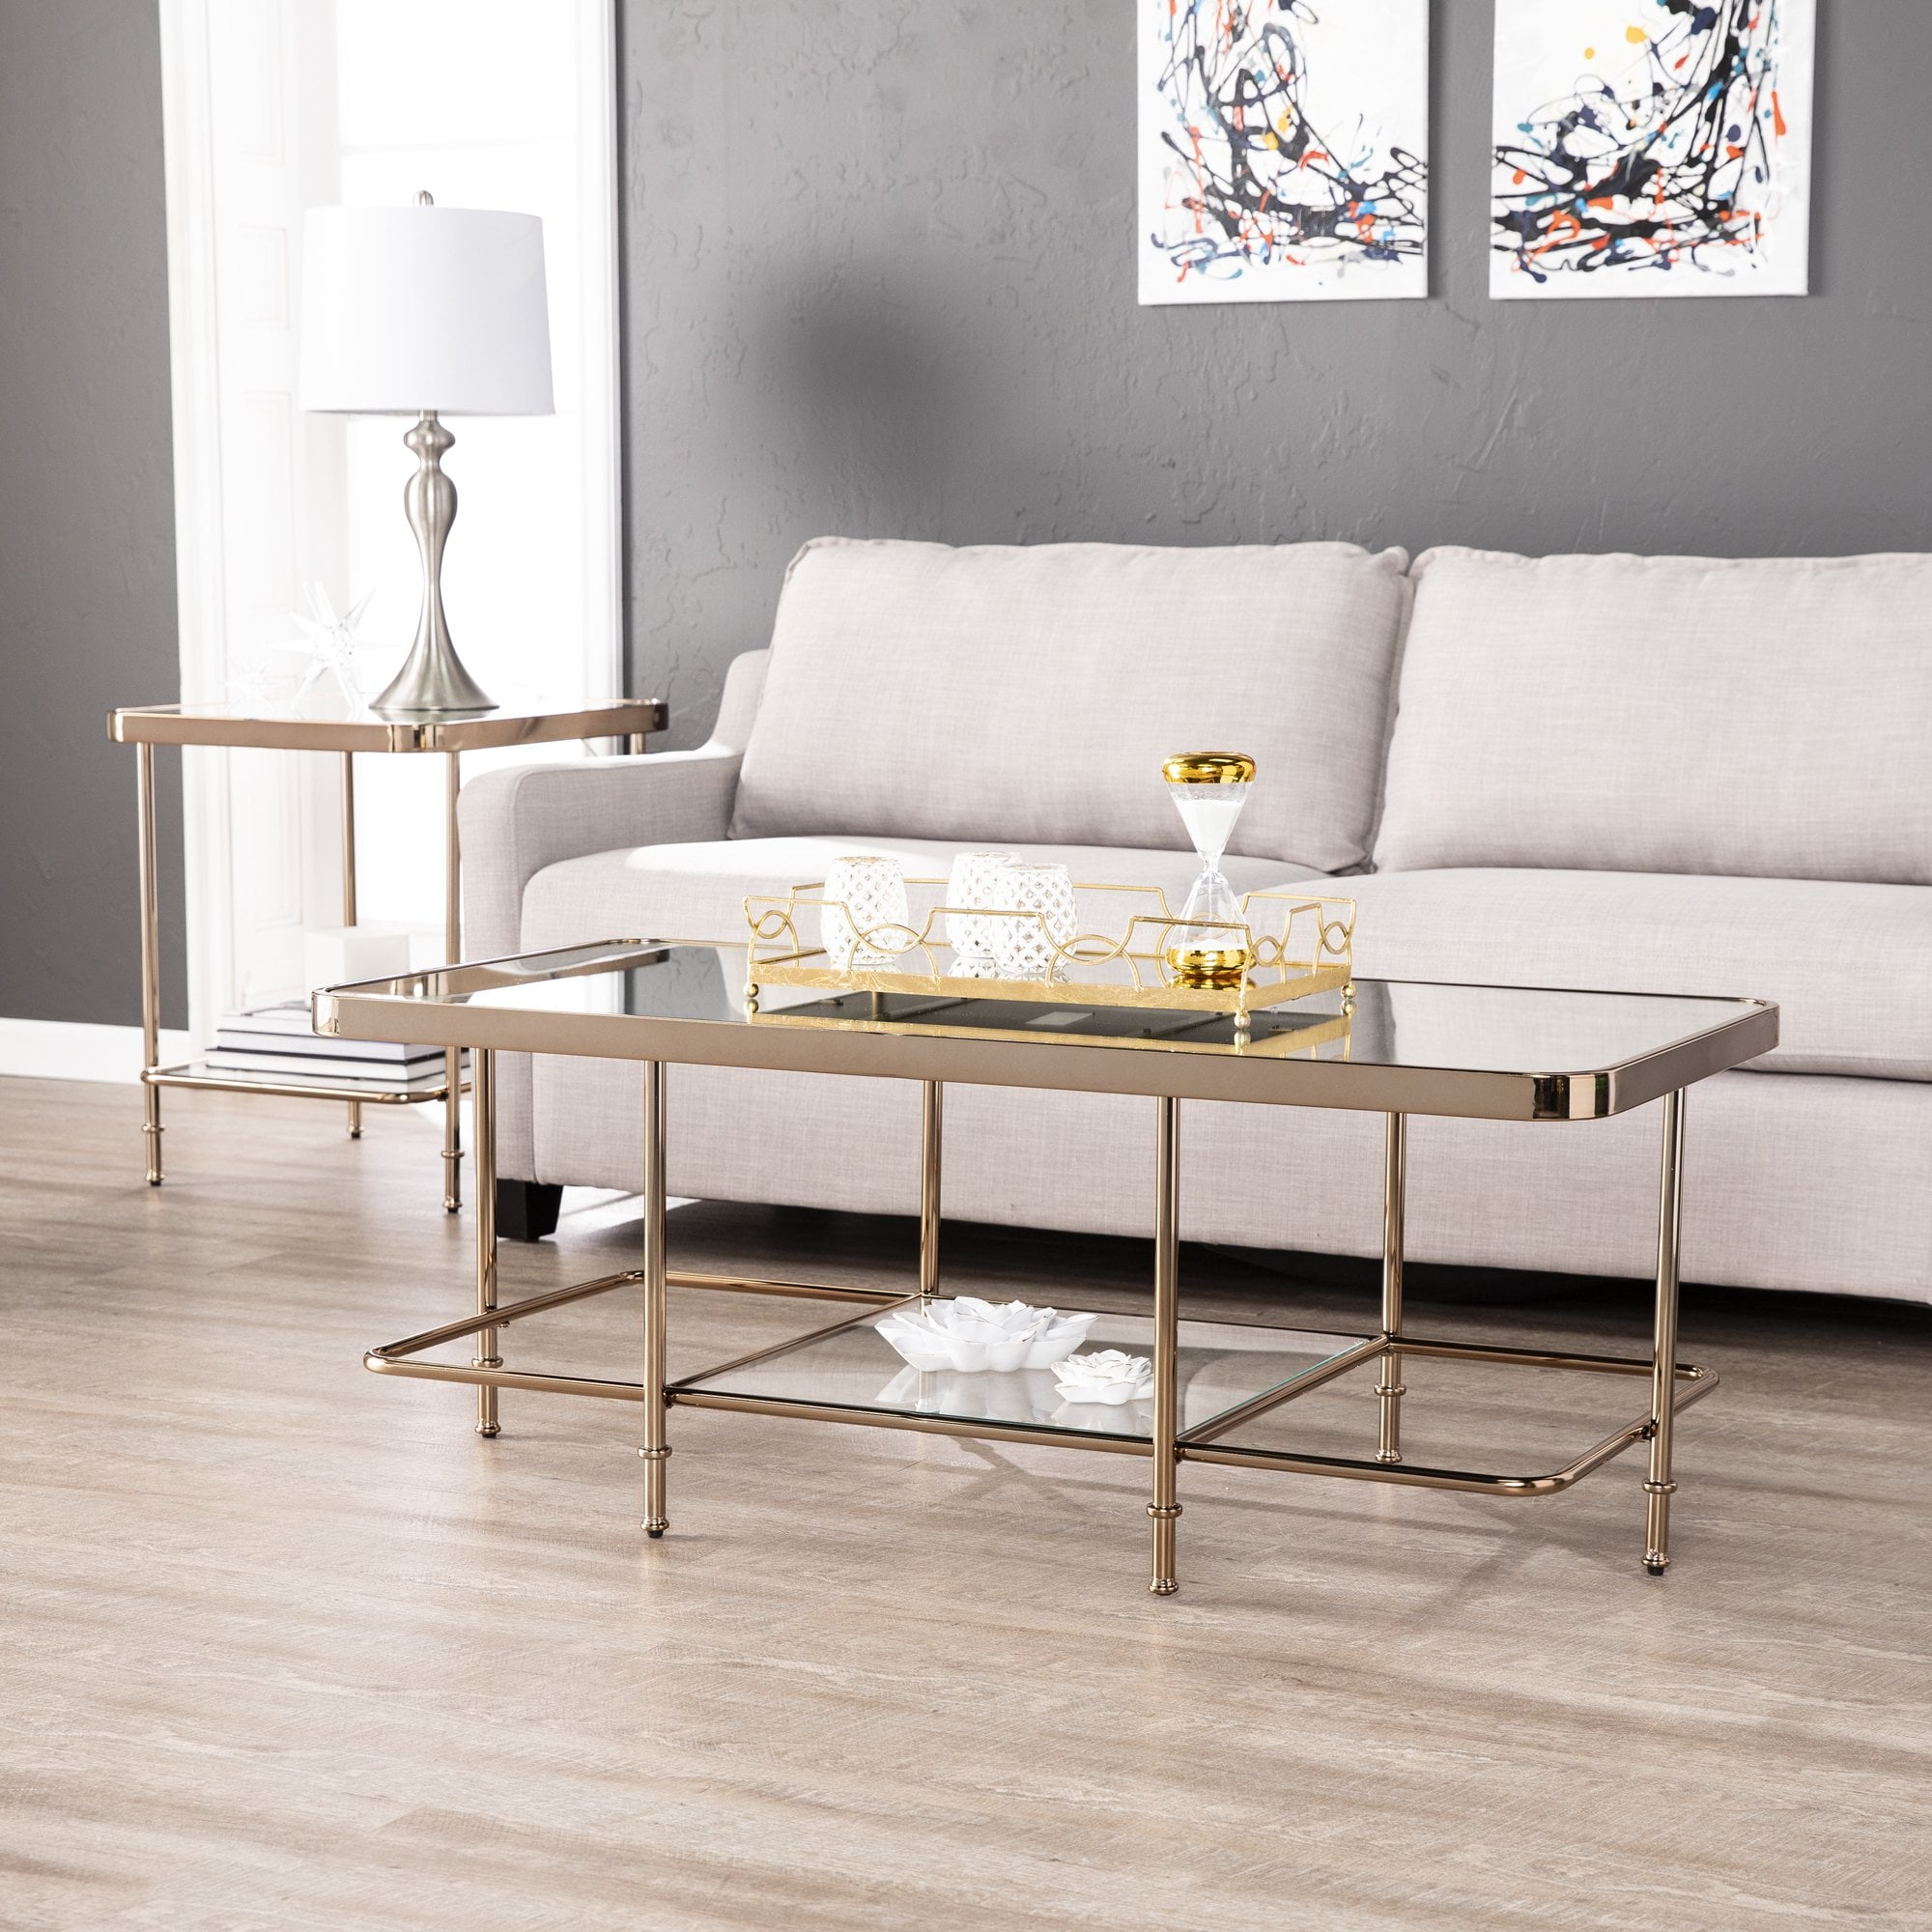 Southern Enterprises Hollywood Glam Mirrored Coffee Table ...